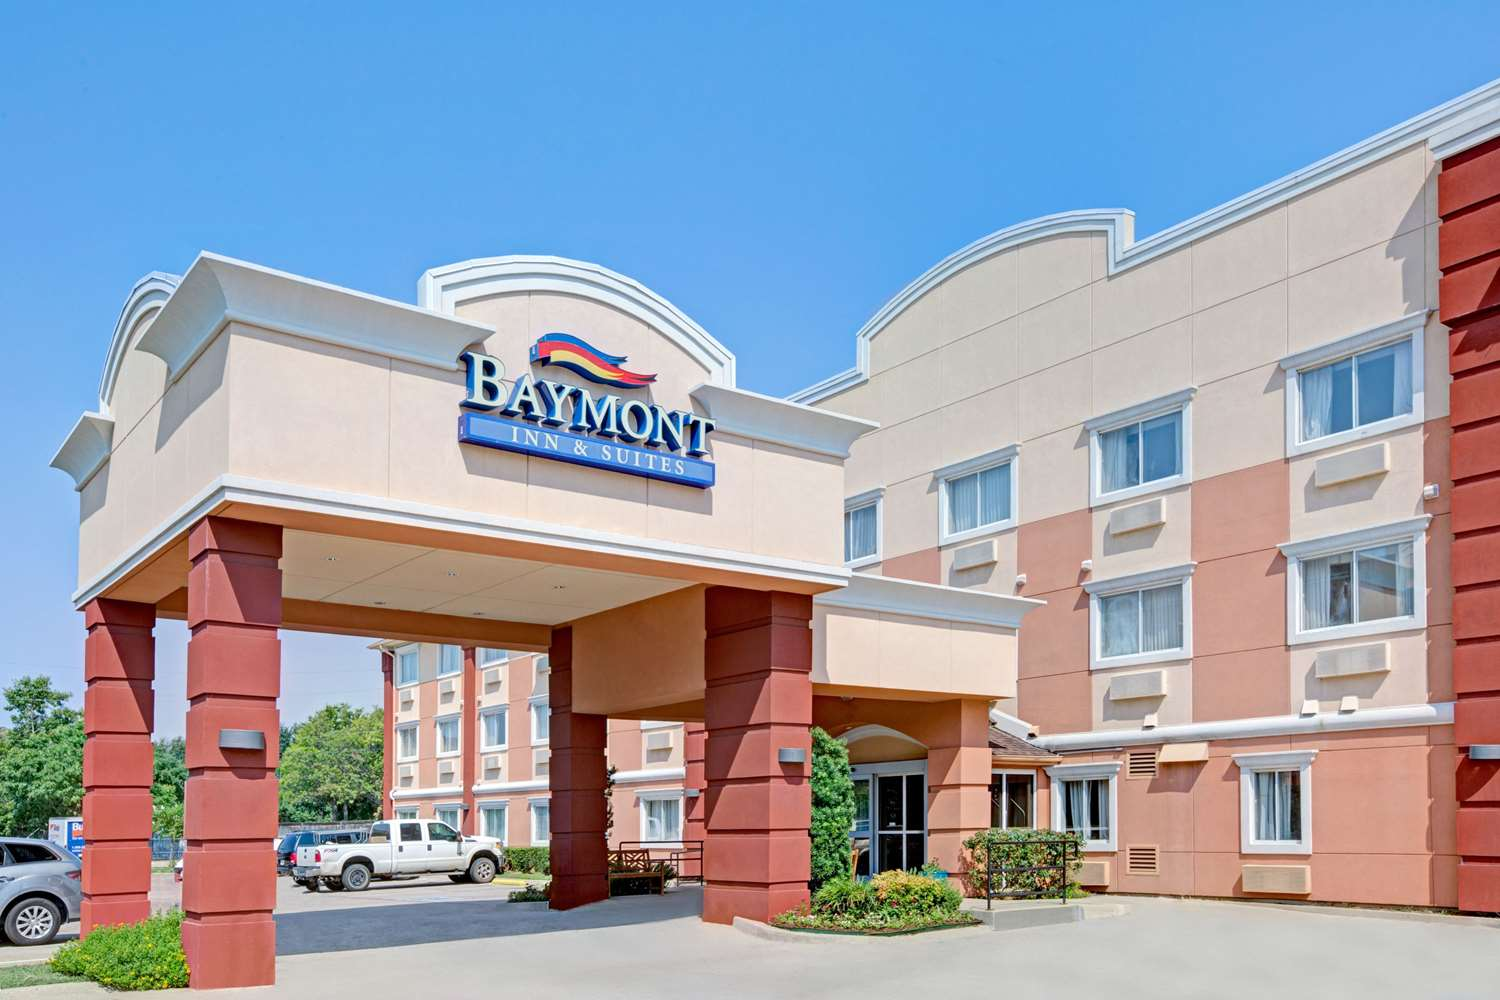 Baymont Inn & Suites Dallas